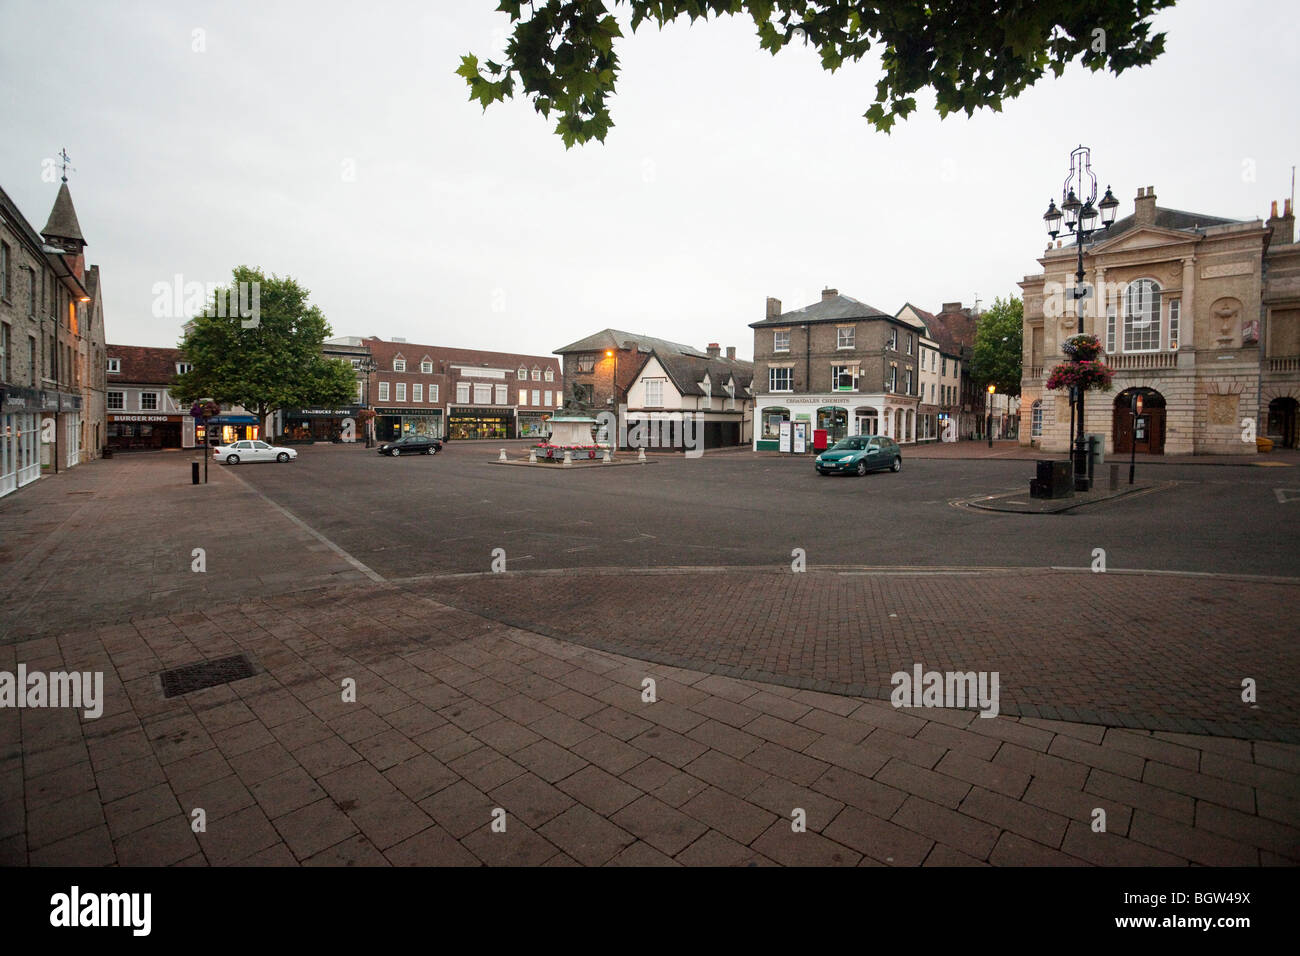 empty deserted town centre of Bury St Edmunds, UK at 5.20am - Stock Image